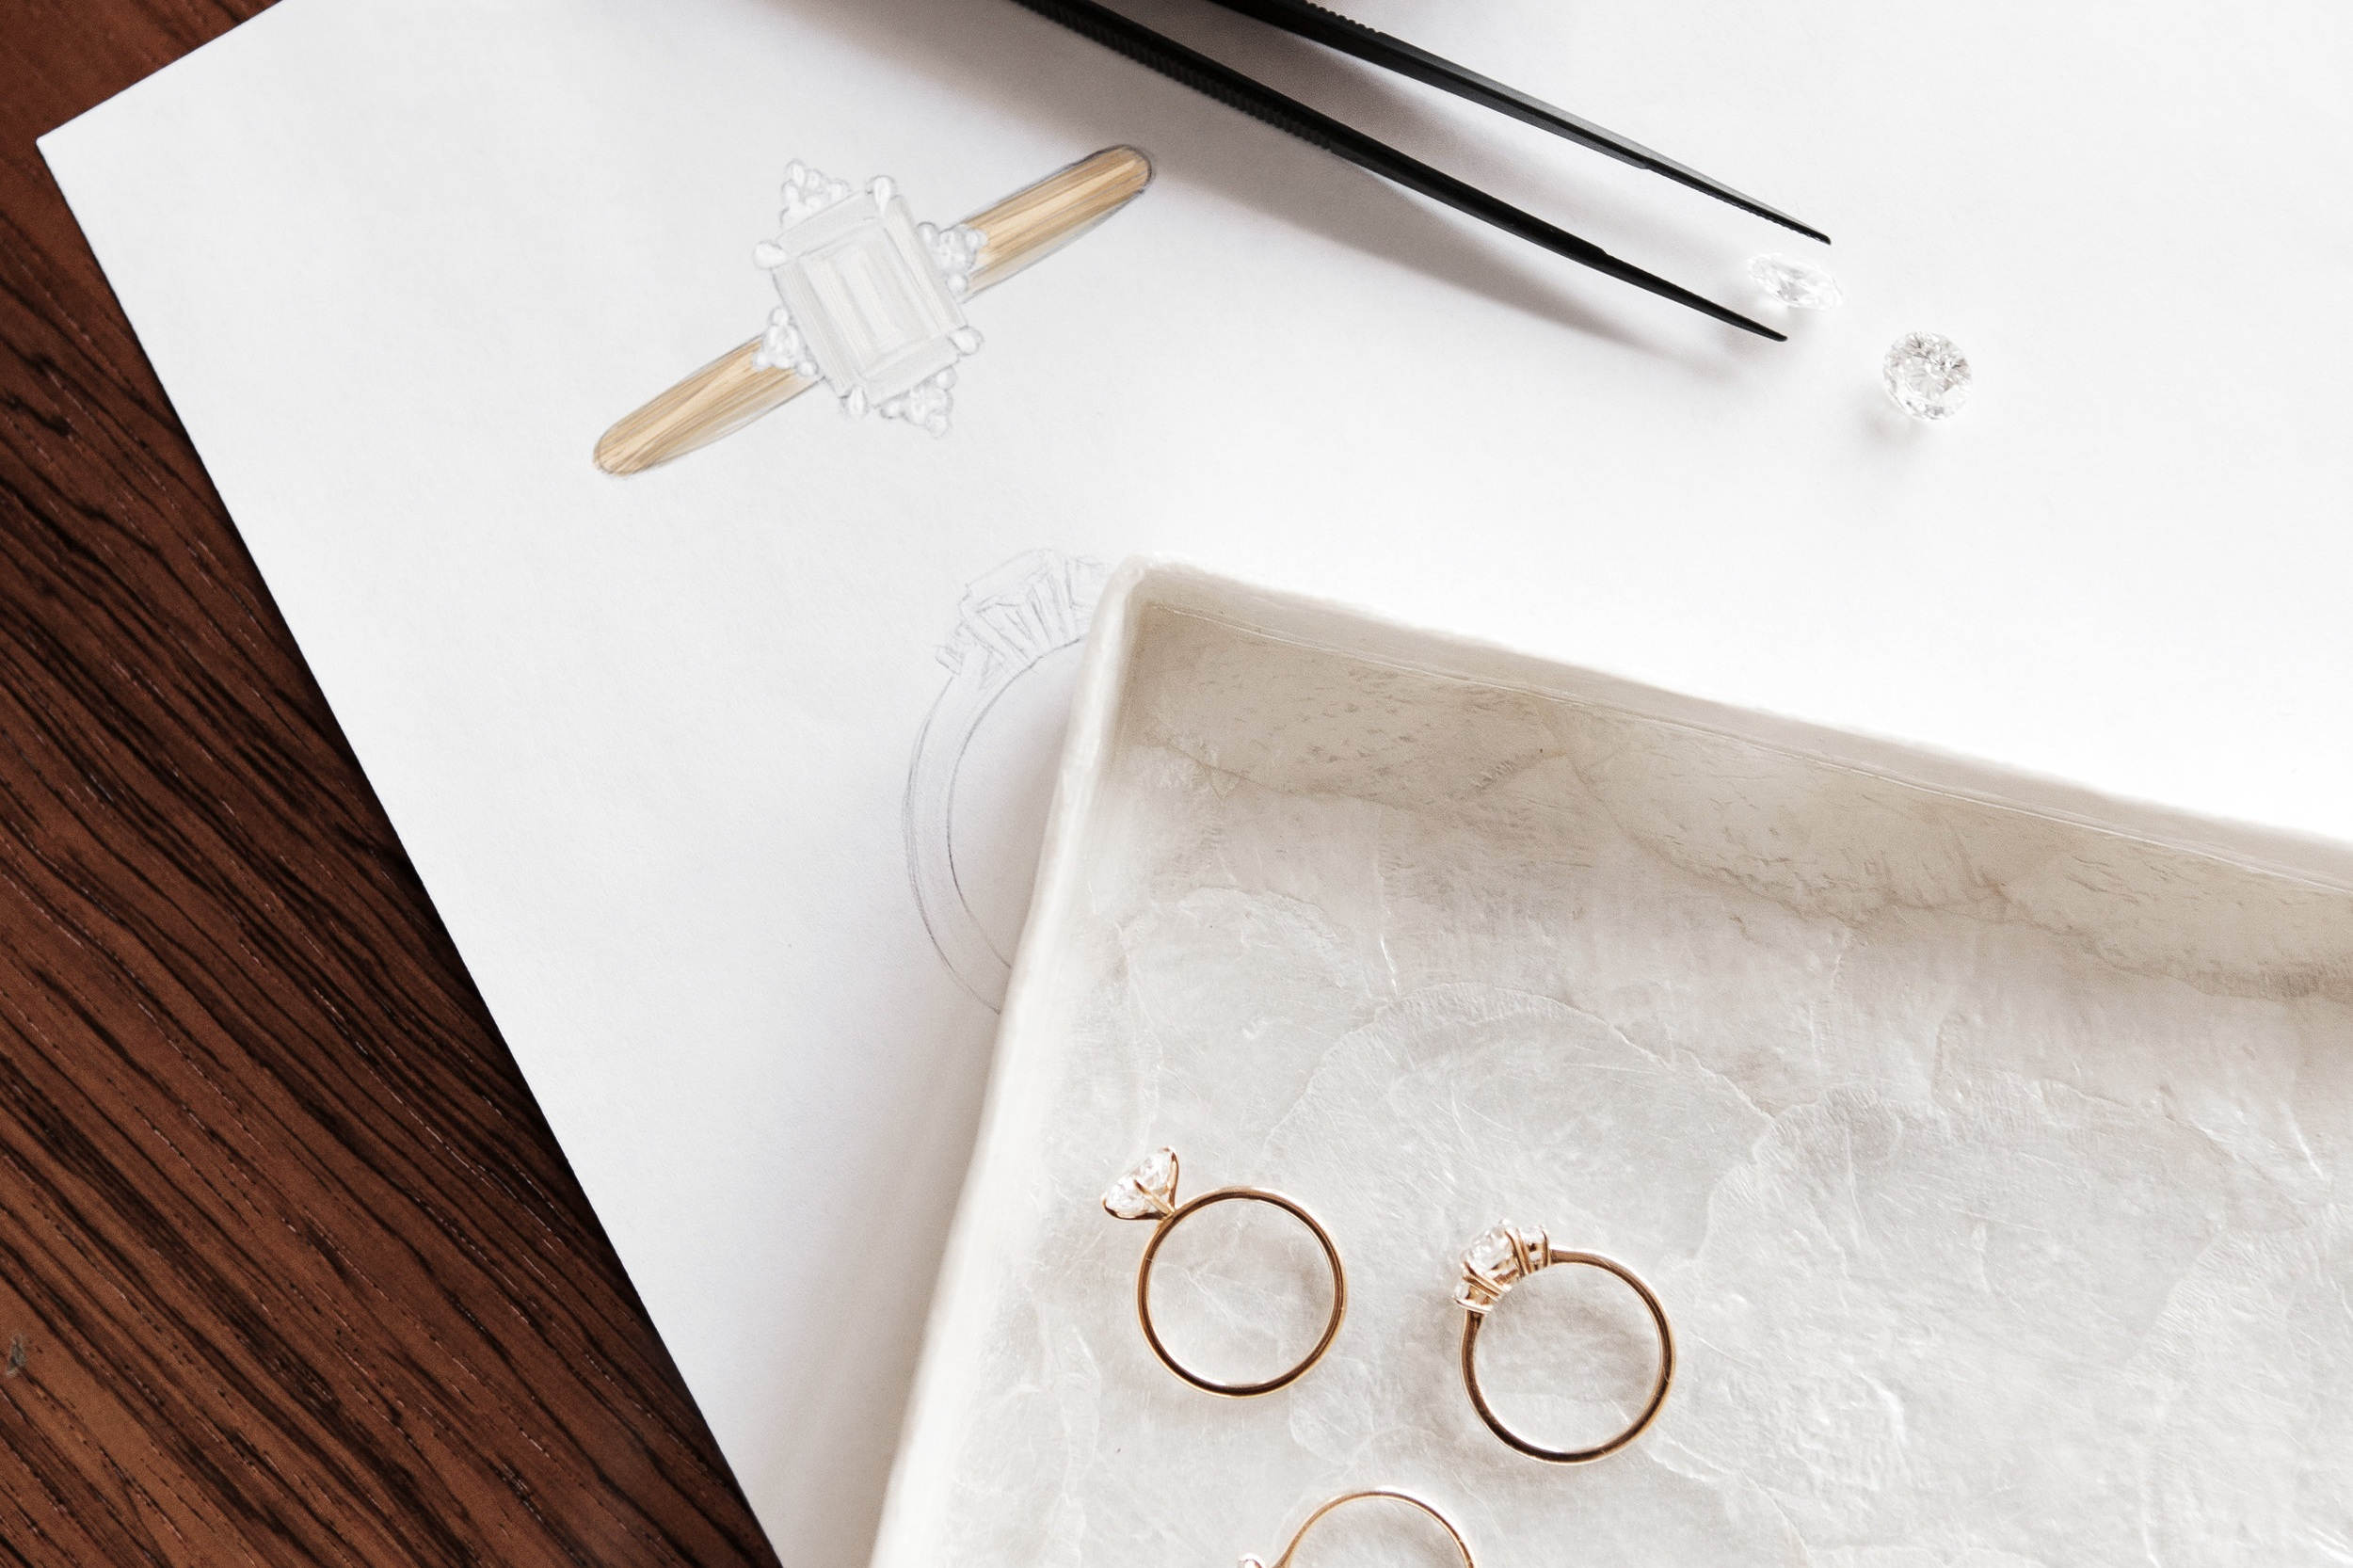 step four - You ring goes into custom fabrication with our exclusive jeweler in New York City